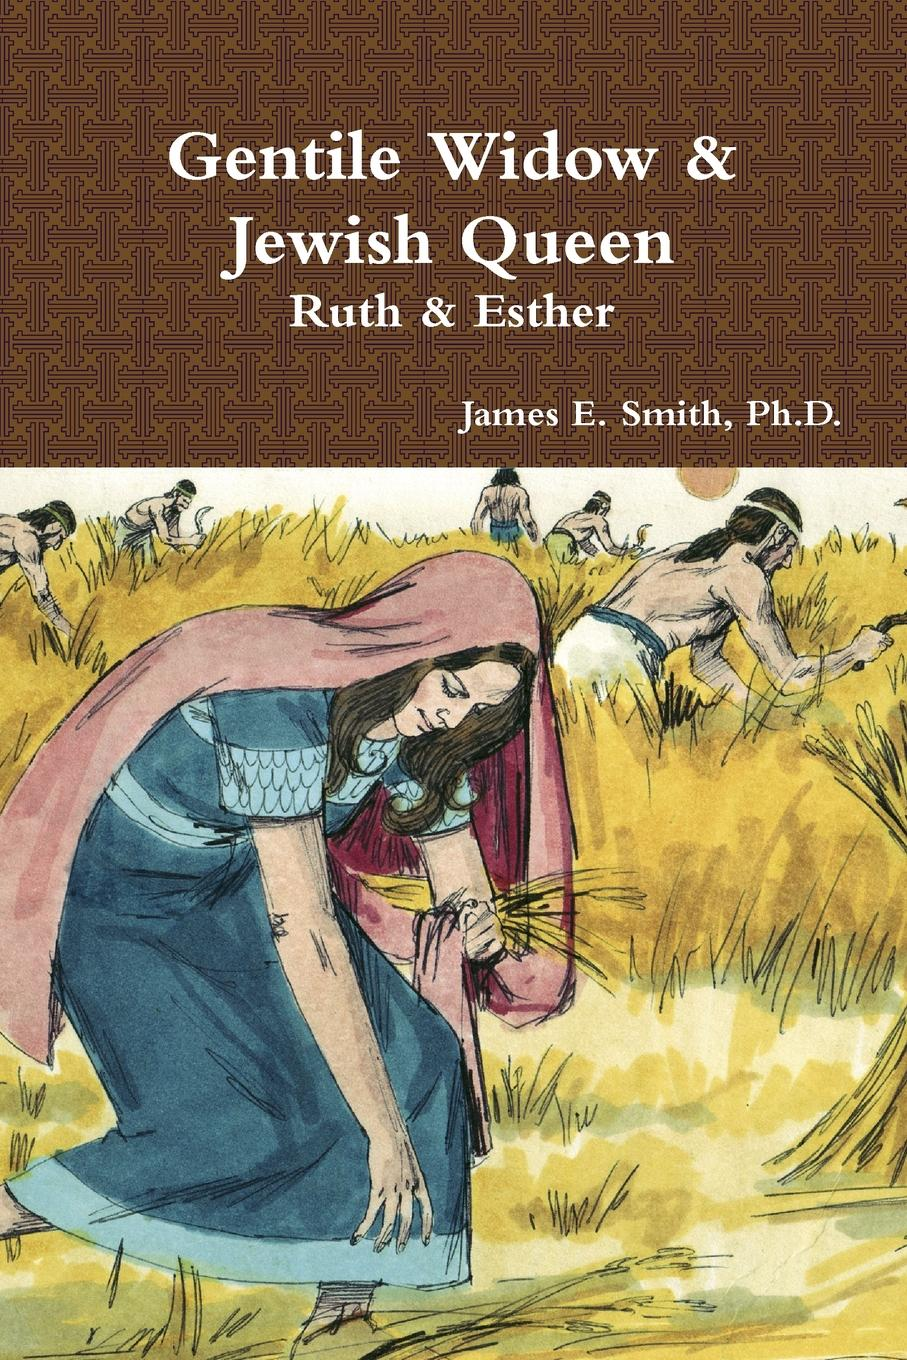 Ph.D. James E. Smith Gentile Widow . Jewish Queen. A Commentary on Ruth and Esther james montague rhodes old testament legends